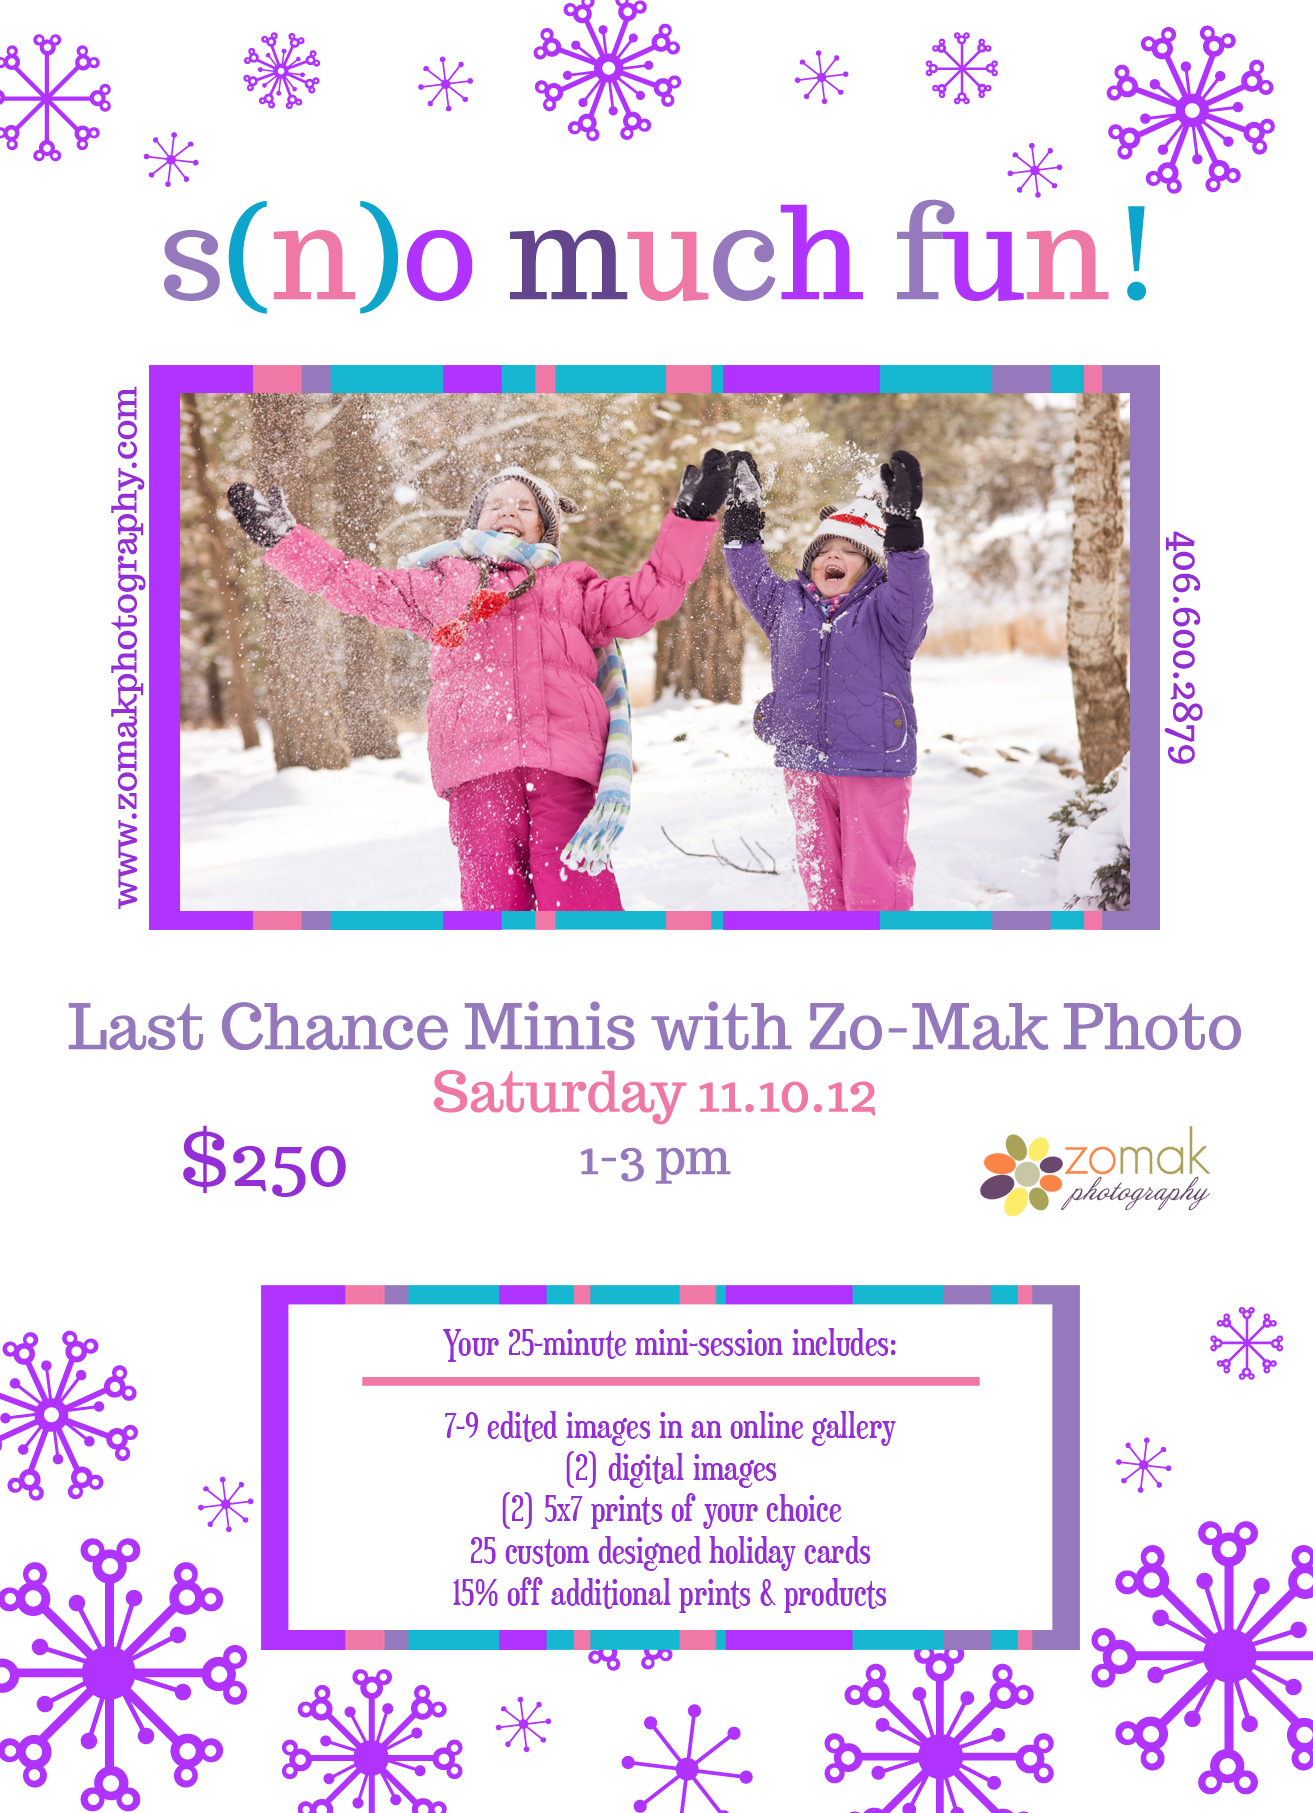 sno much fun last minute minis